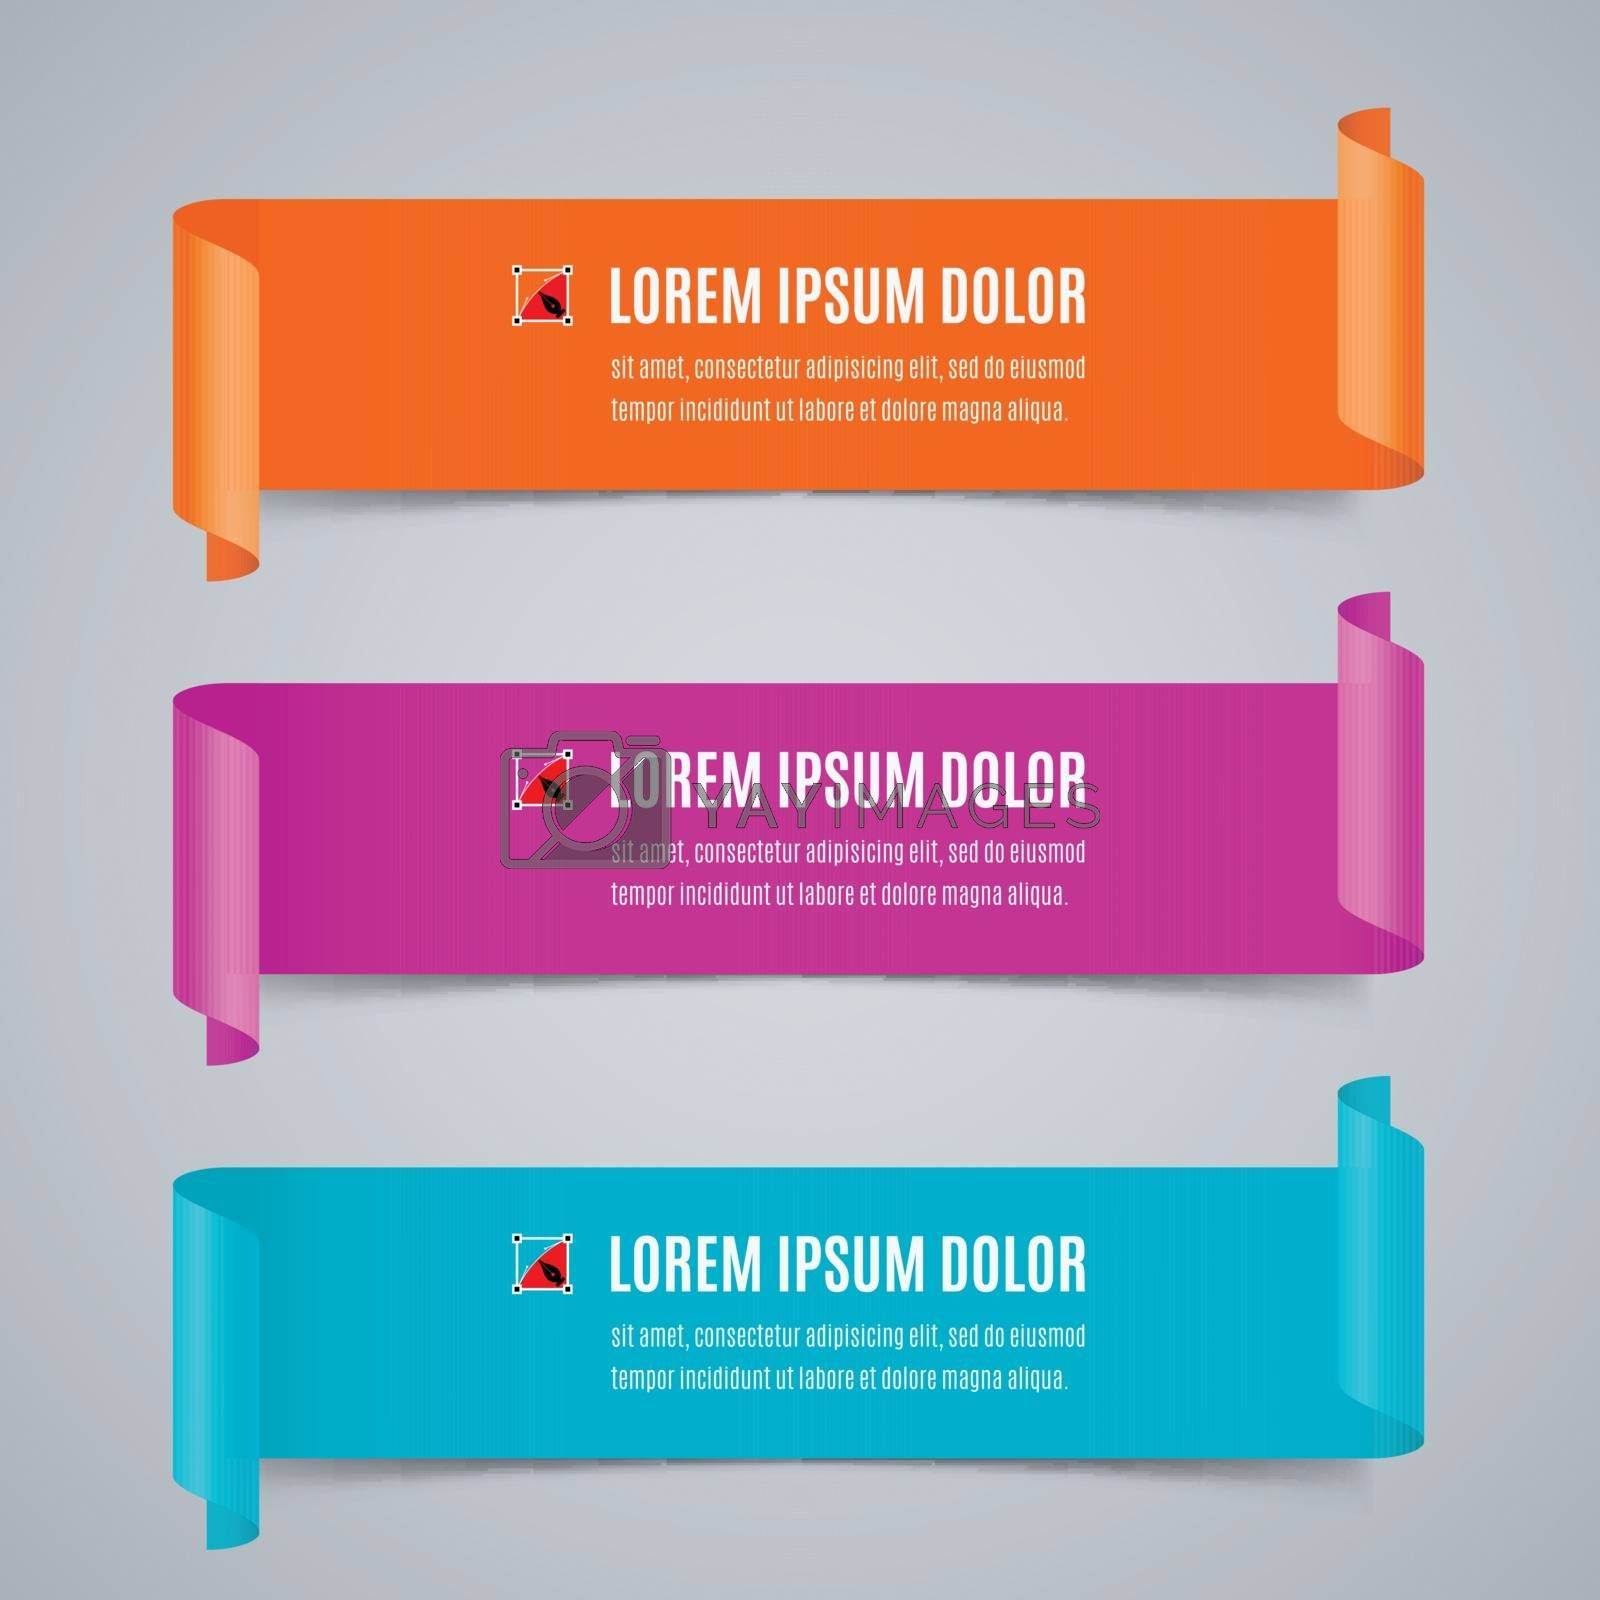 Set of Colorful Horizontal Curved Paper Ribbon Banners with Paper Rolls and Template Text in Orange, Pink and Blue Colors